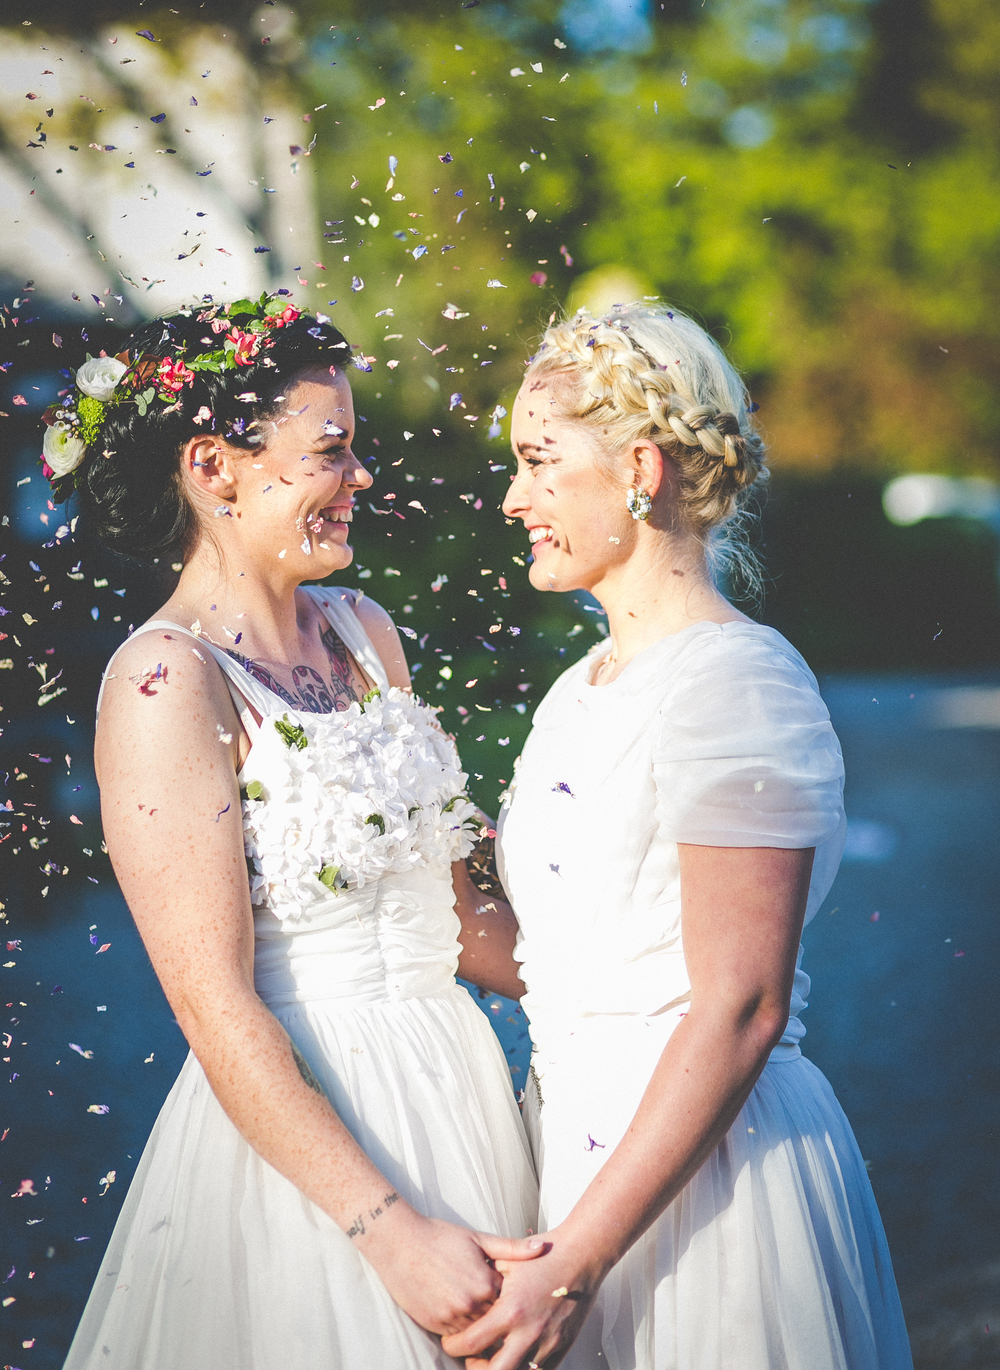 Every Love Story Is Equal: Zena + Louise on One Fab Day